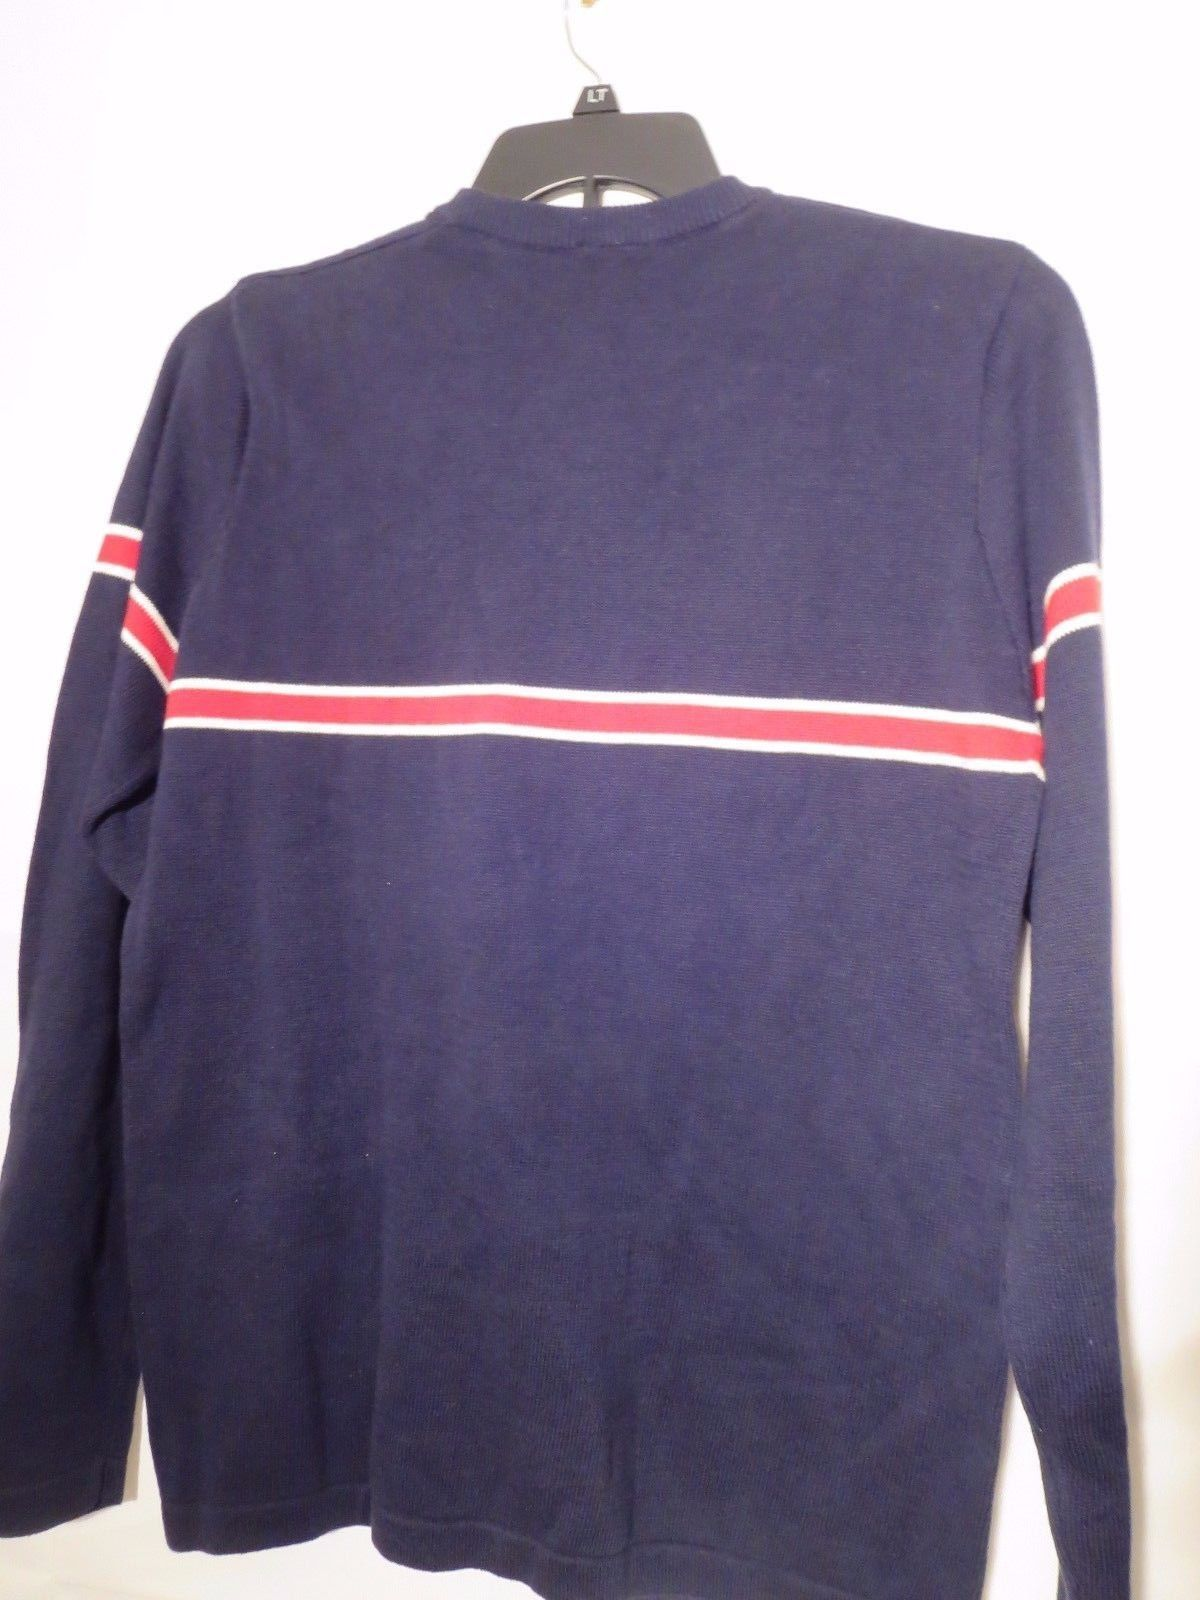 Nautica 50% OFF Men's Size M Pullover Sweater Navy Blue w/Stripes New With Tag